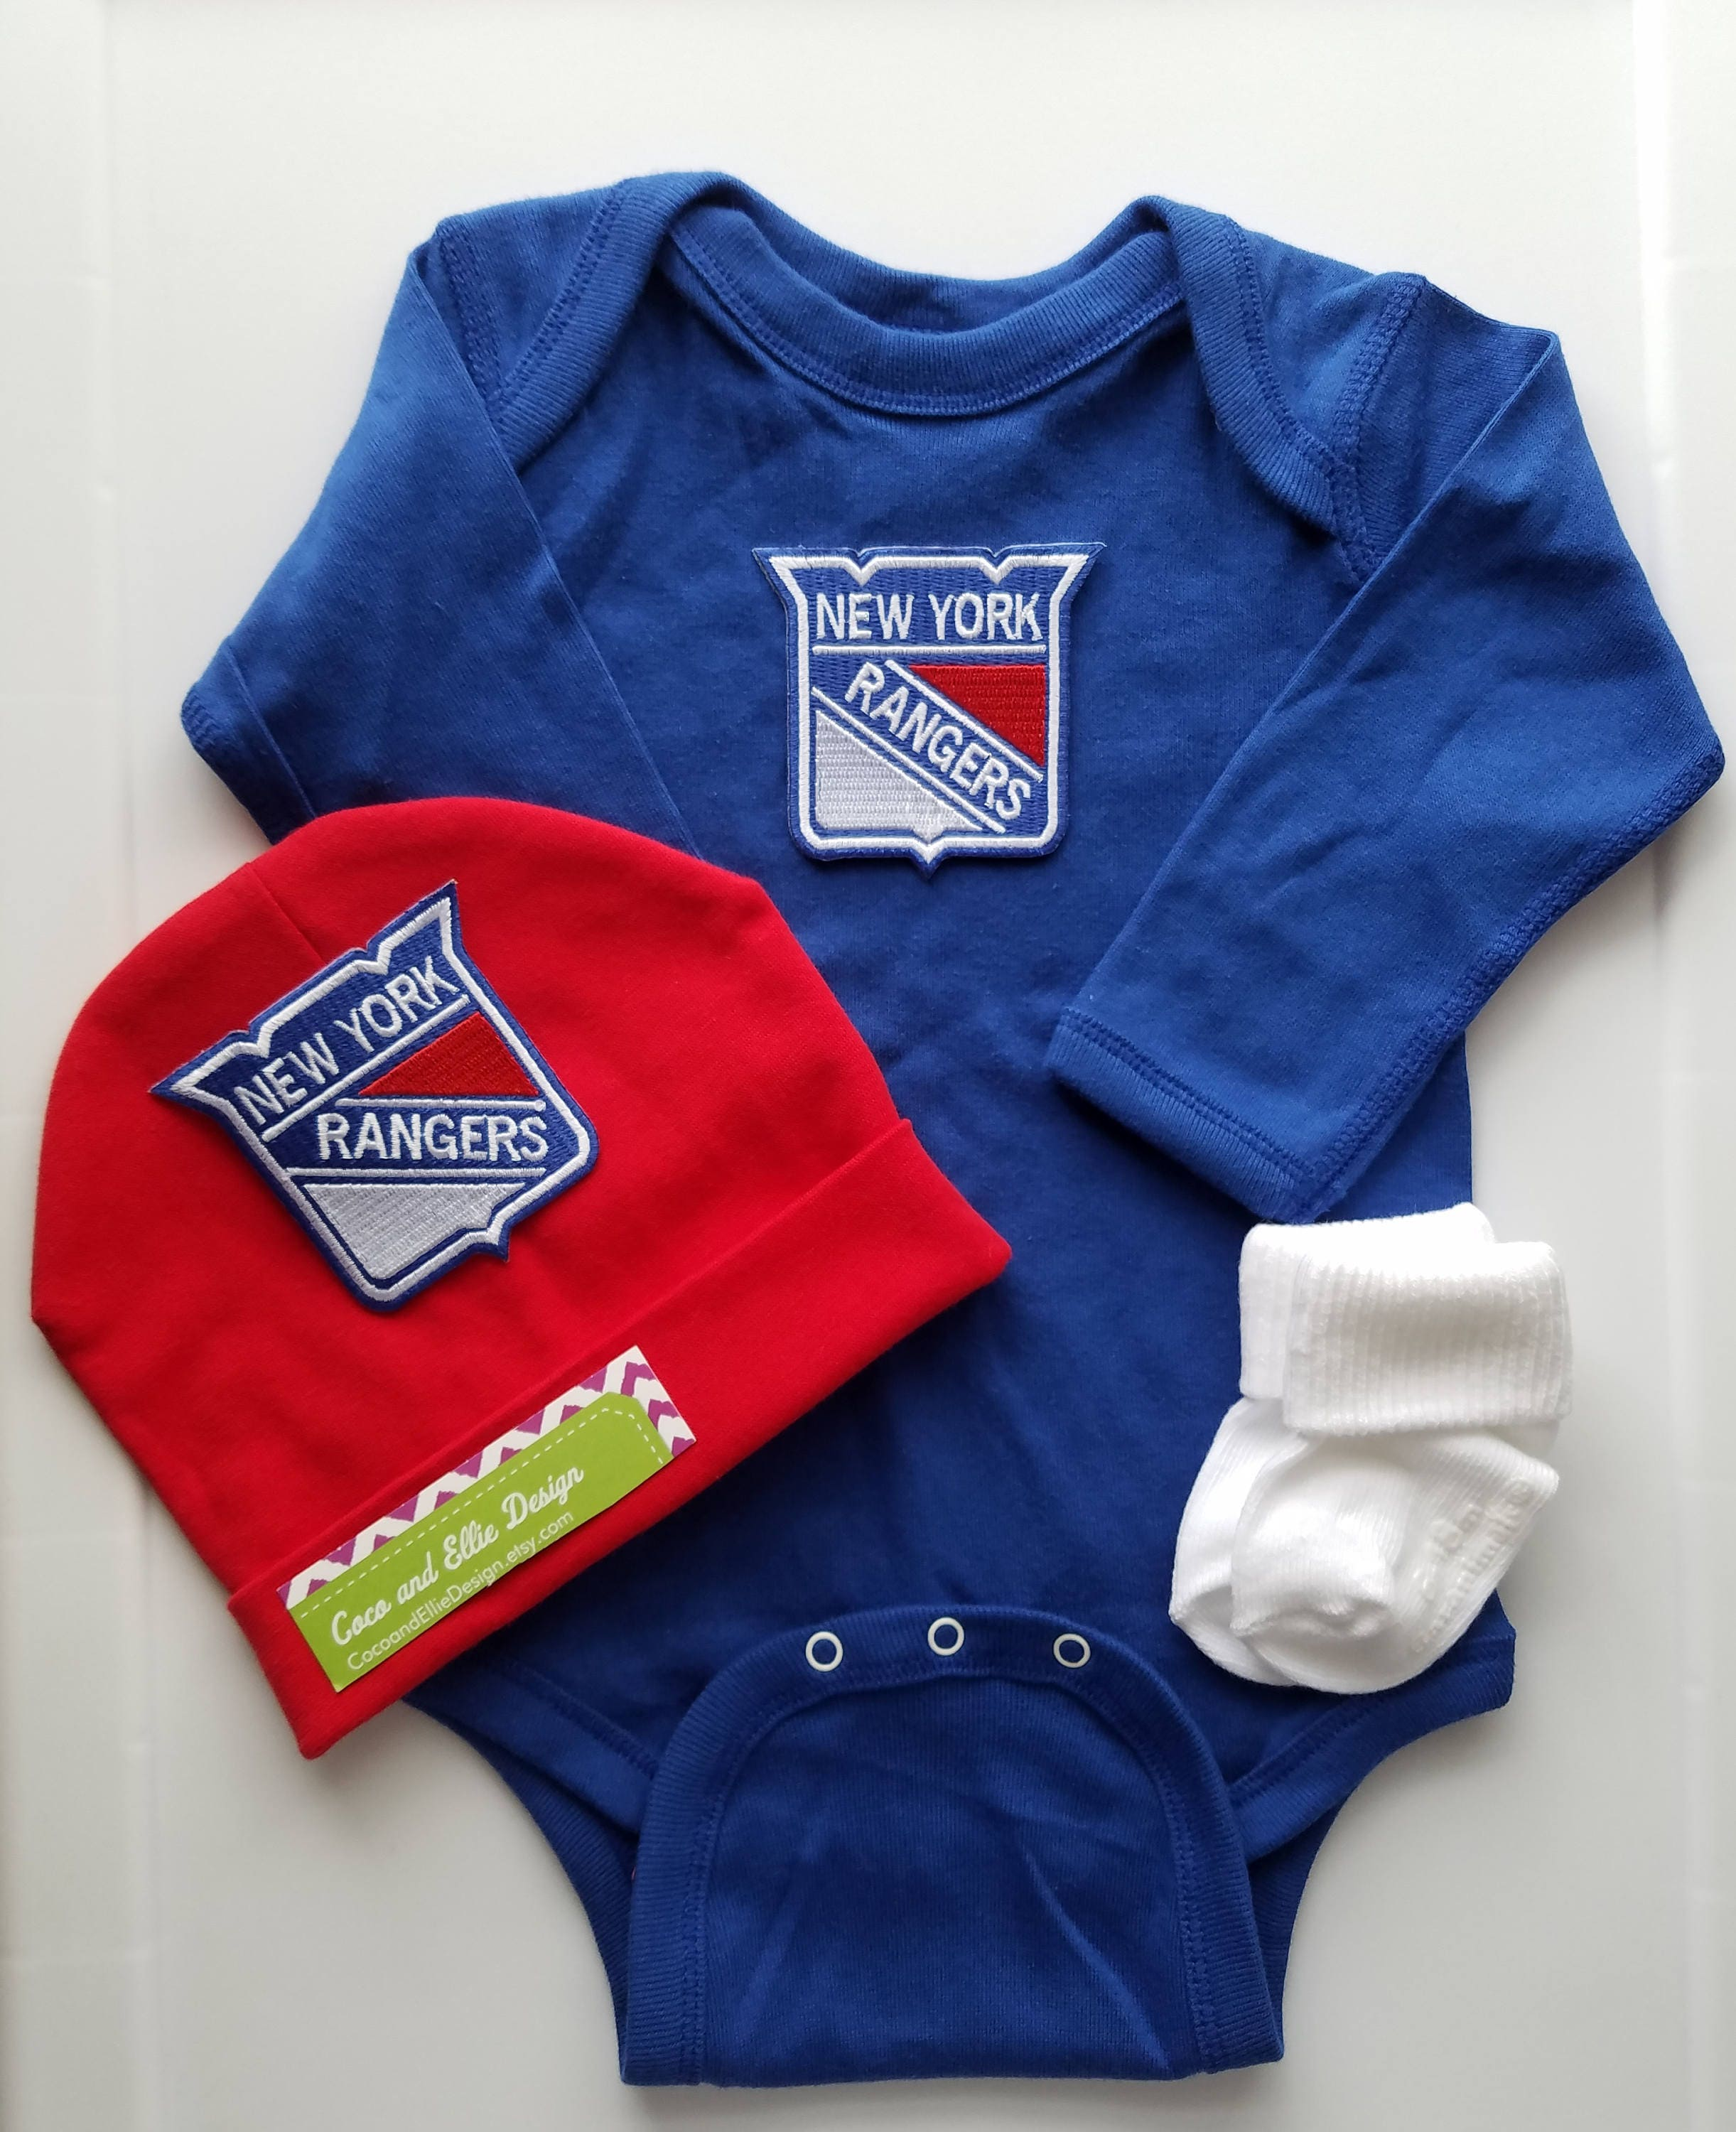 New York Rangers baby outfit-new york rangers take home-ny  533c261ae72d